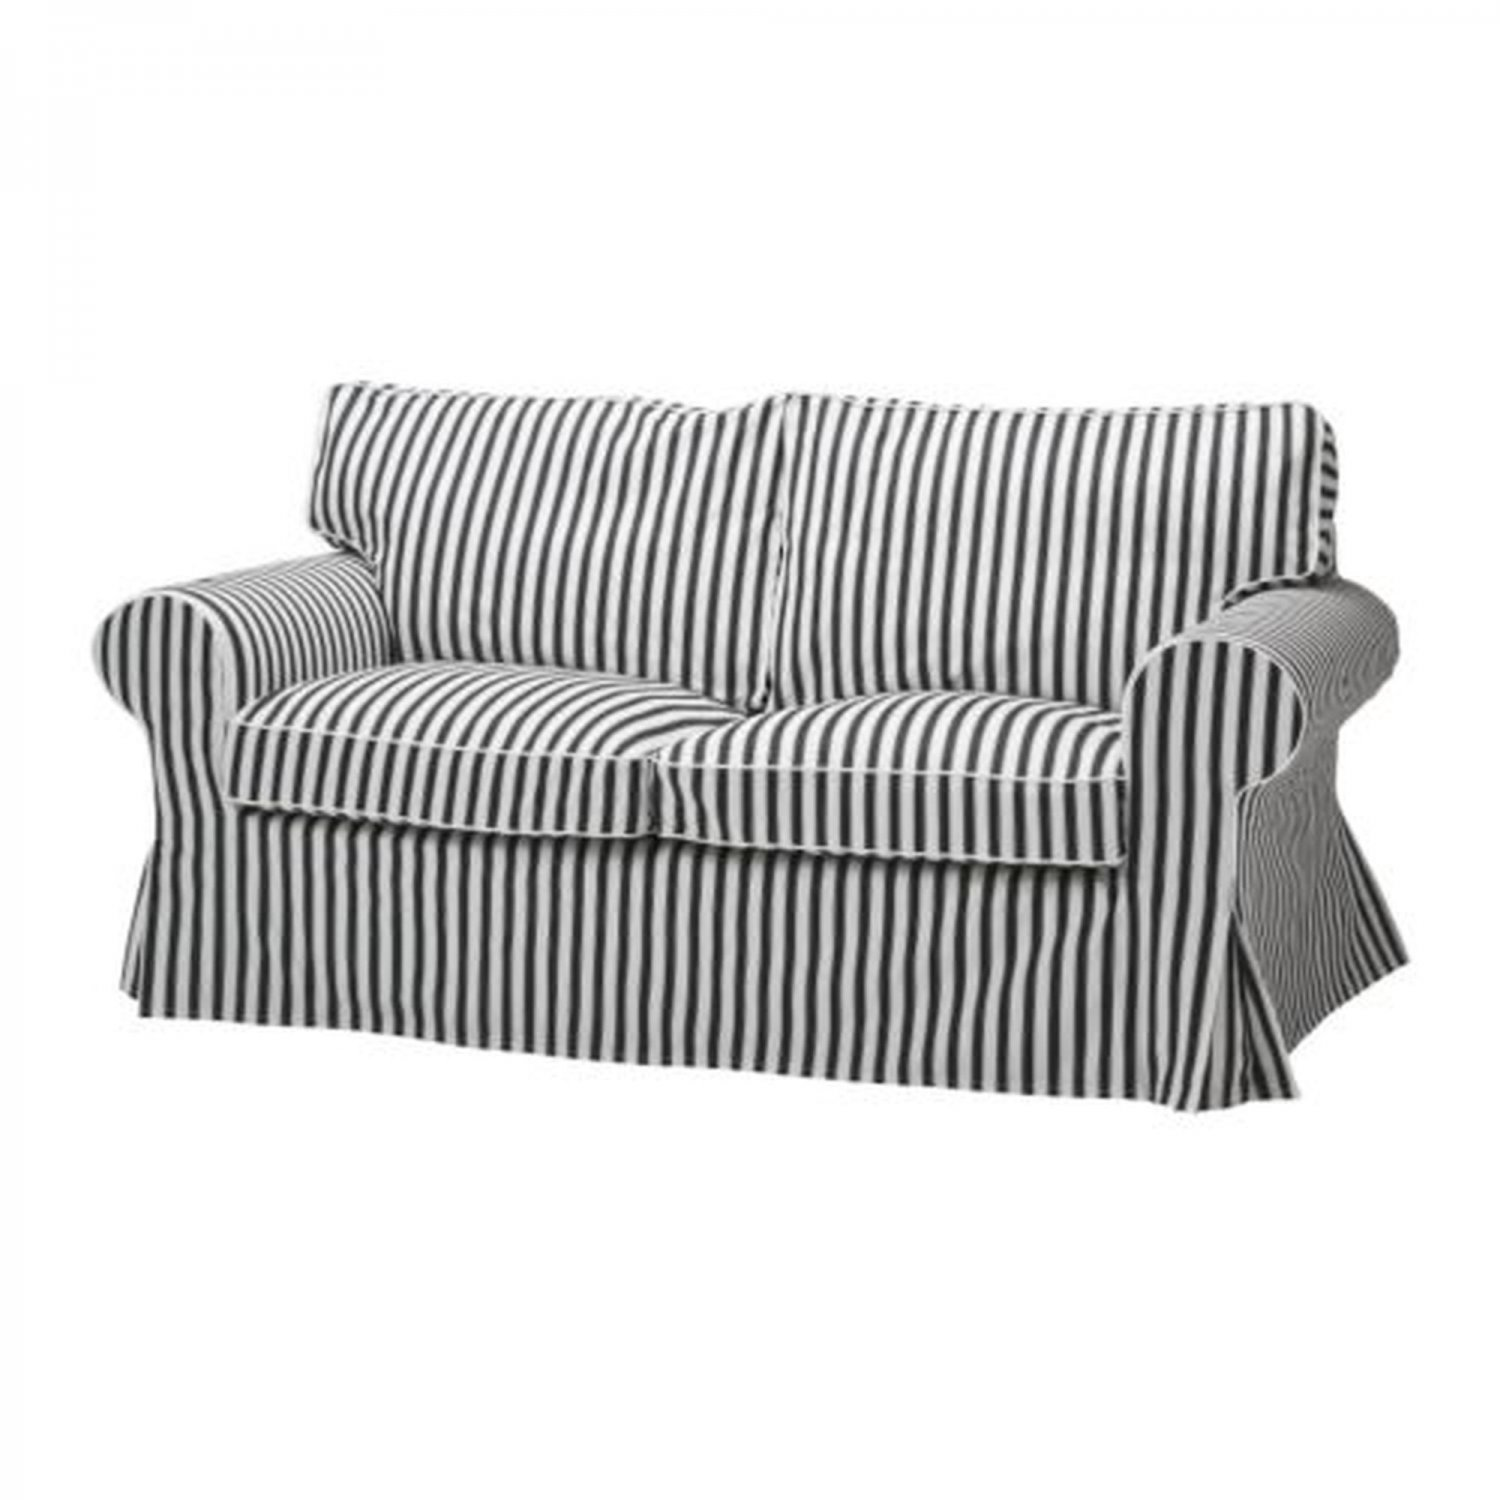 Bettsofa Florida Ektorp Sofa Bed Ikea Canada Top Upgrades For Increasing Your Ikea